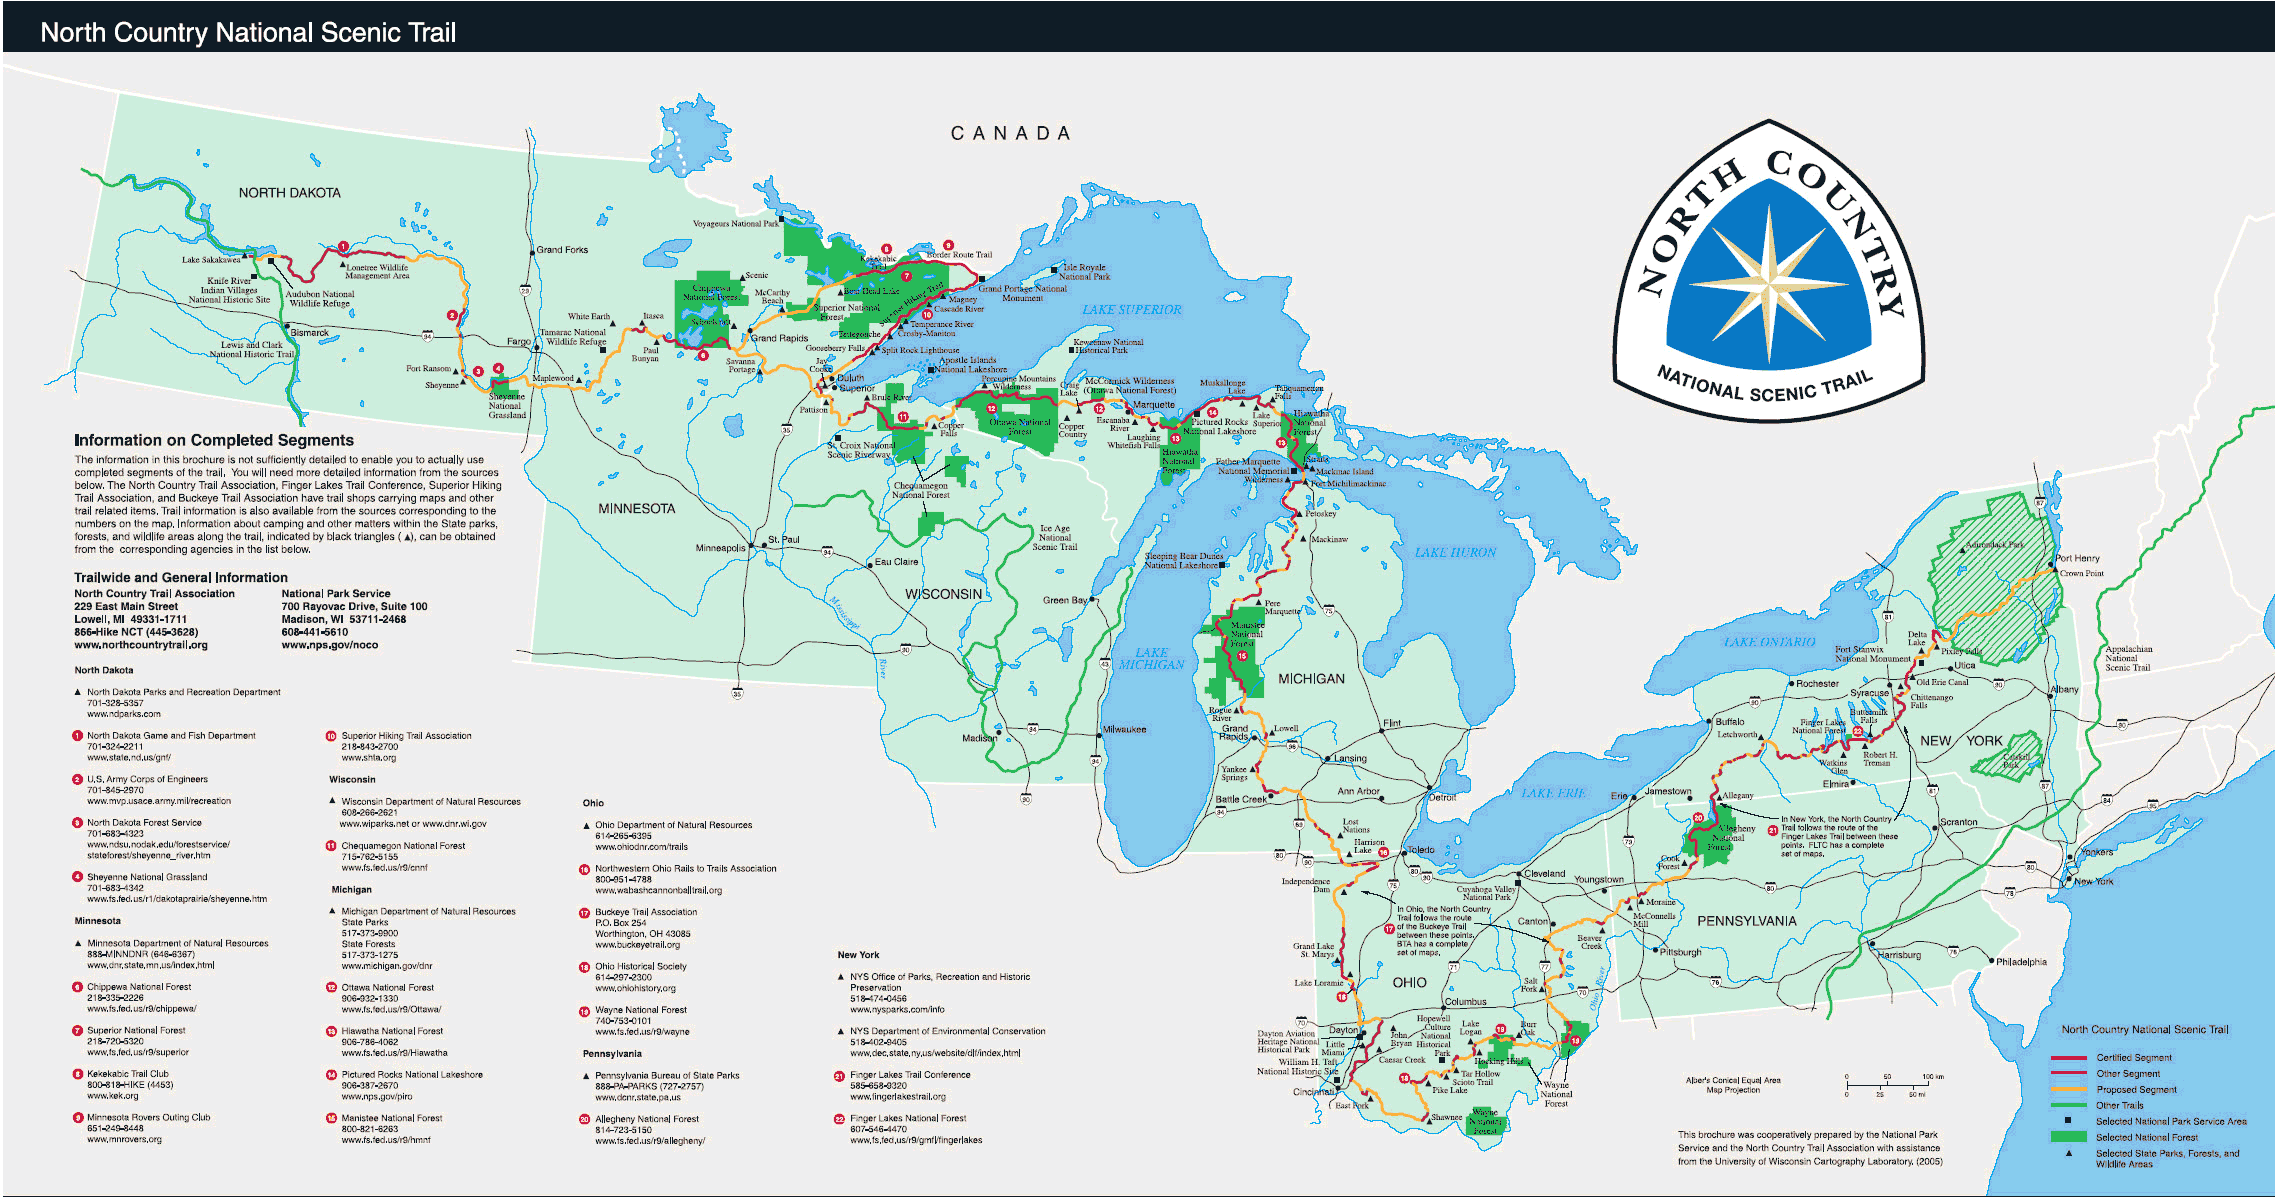 Guide to the north country national scenic trail in minnesota